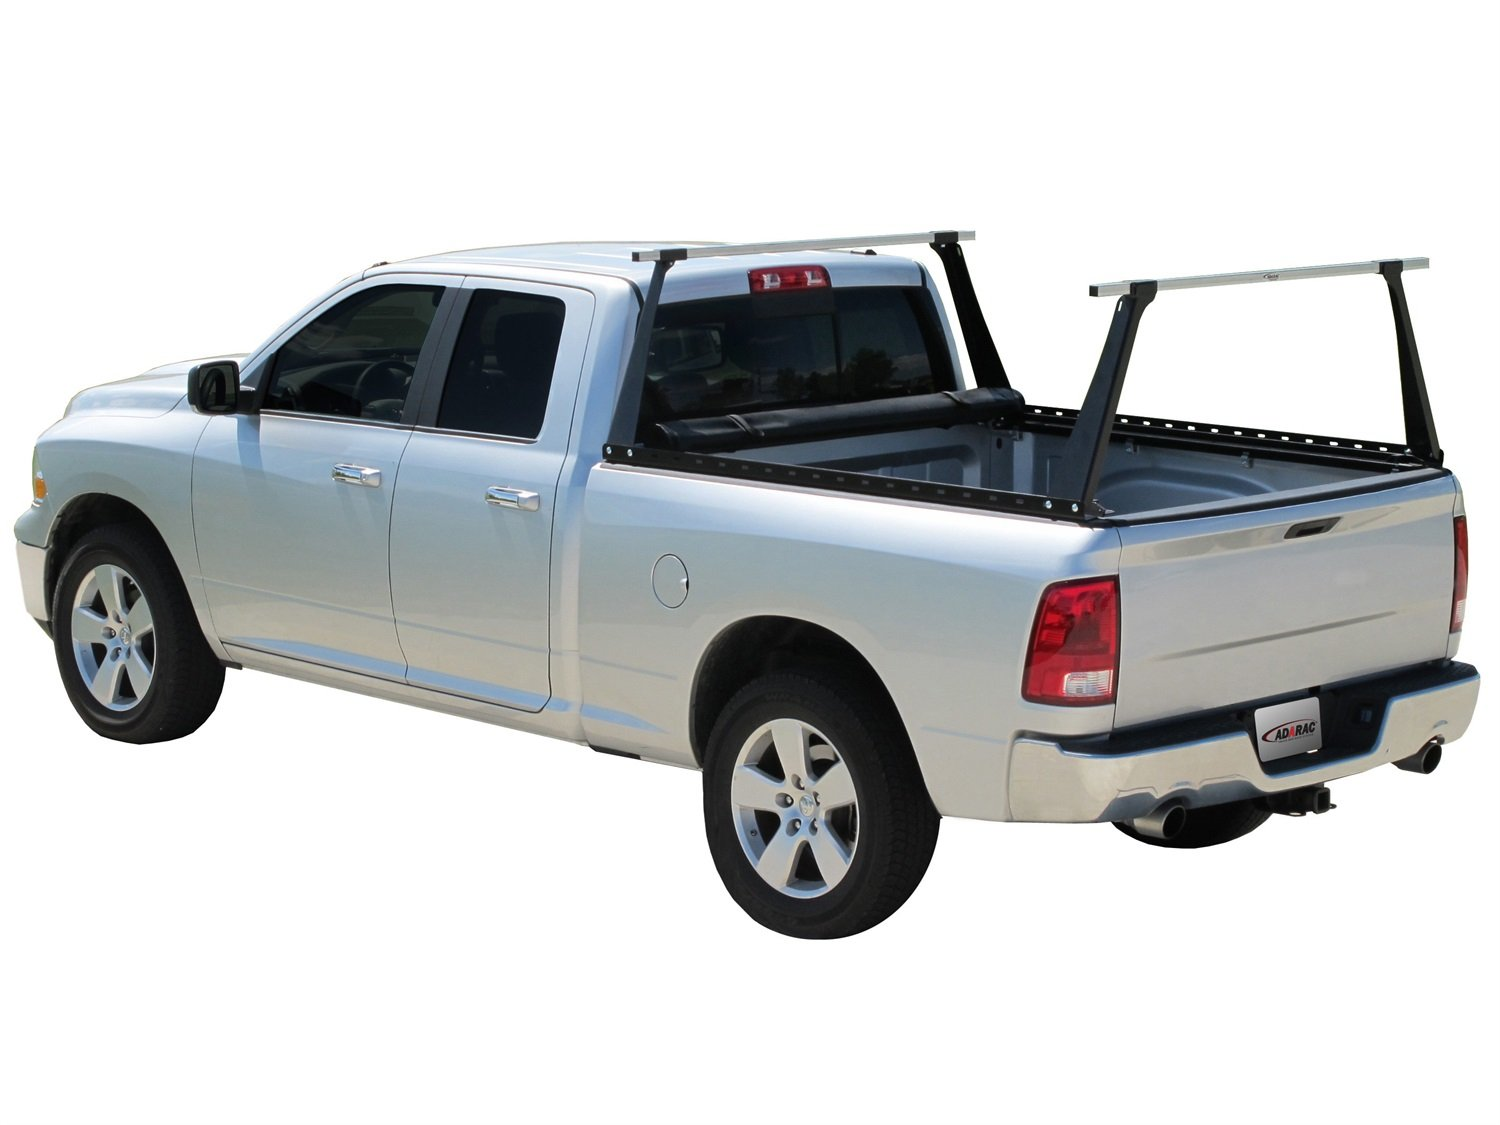 Ford F150 Rack >> Access 70490 Adarac Truck Bed Rack For Ford F150 With 5 5 Bed